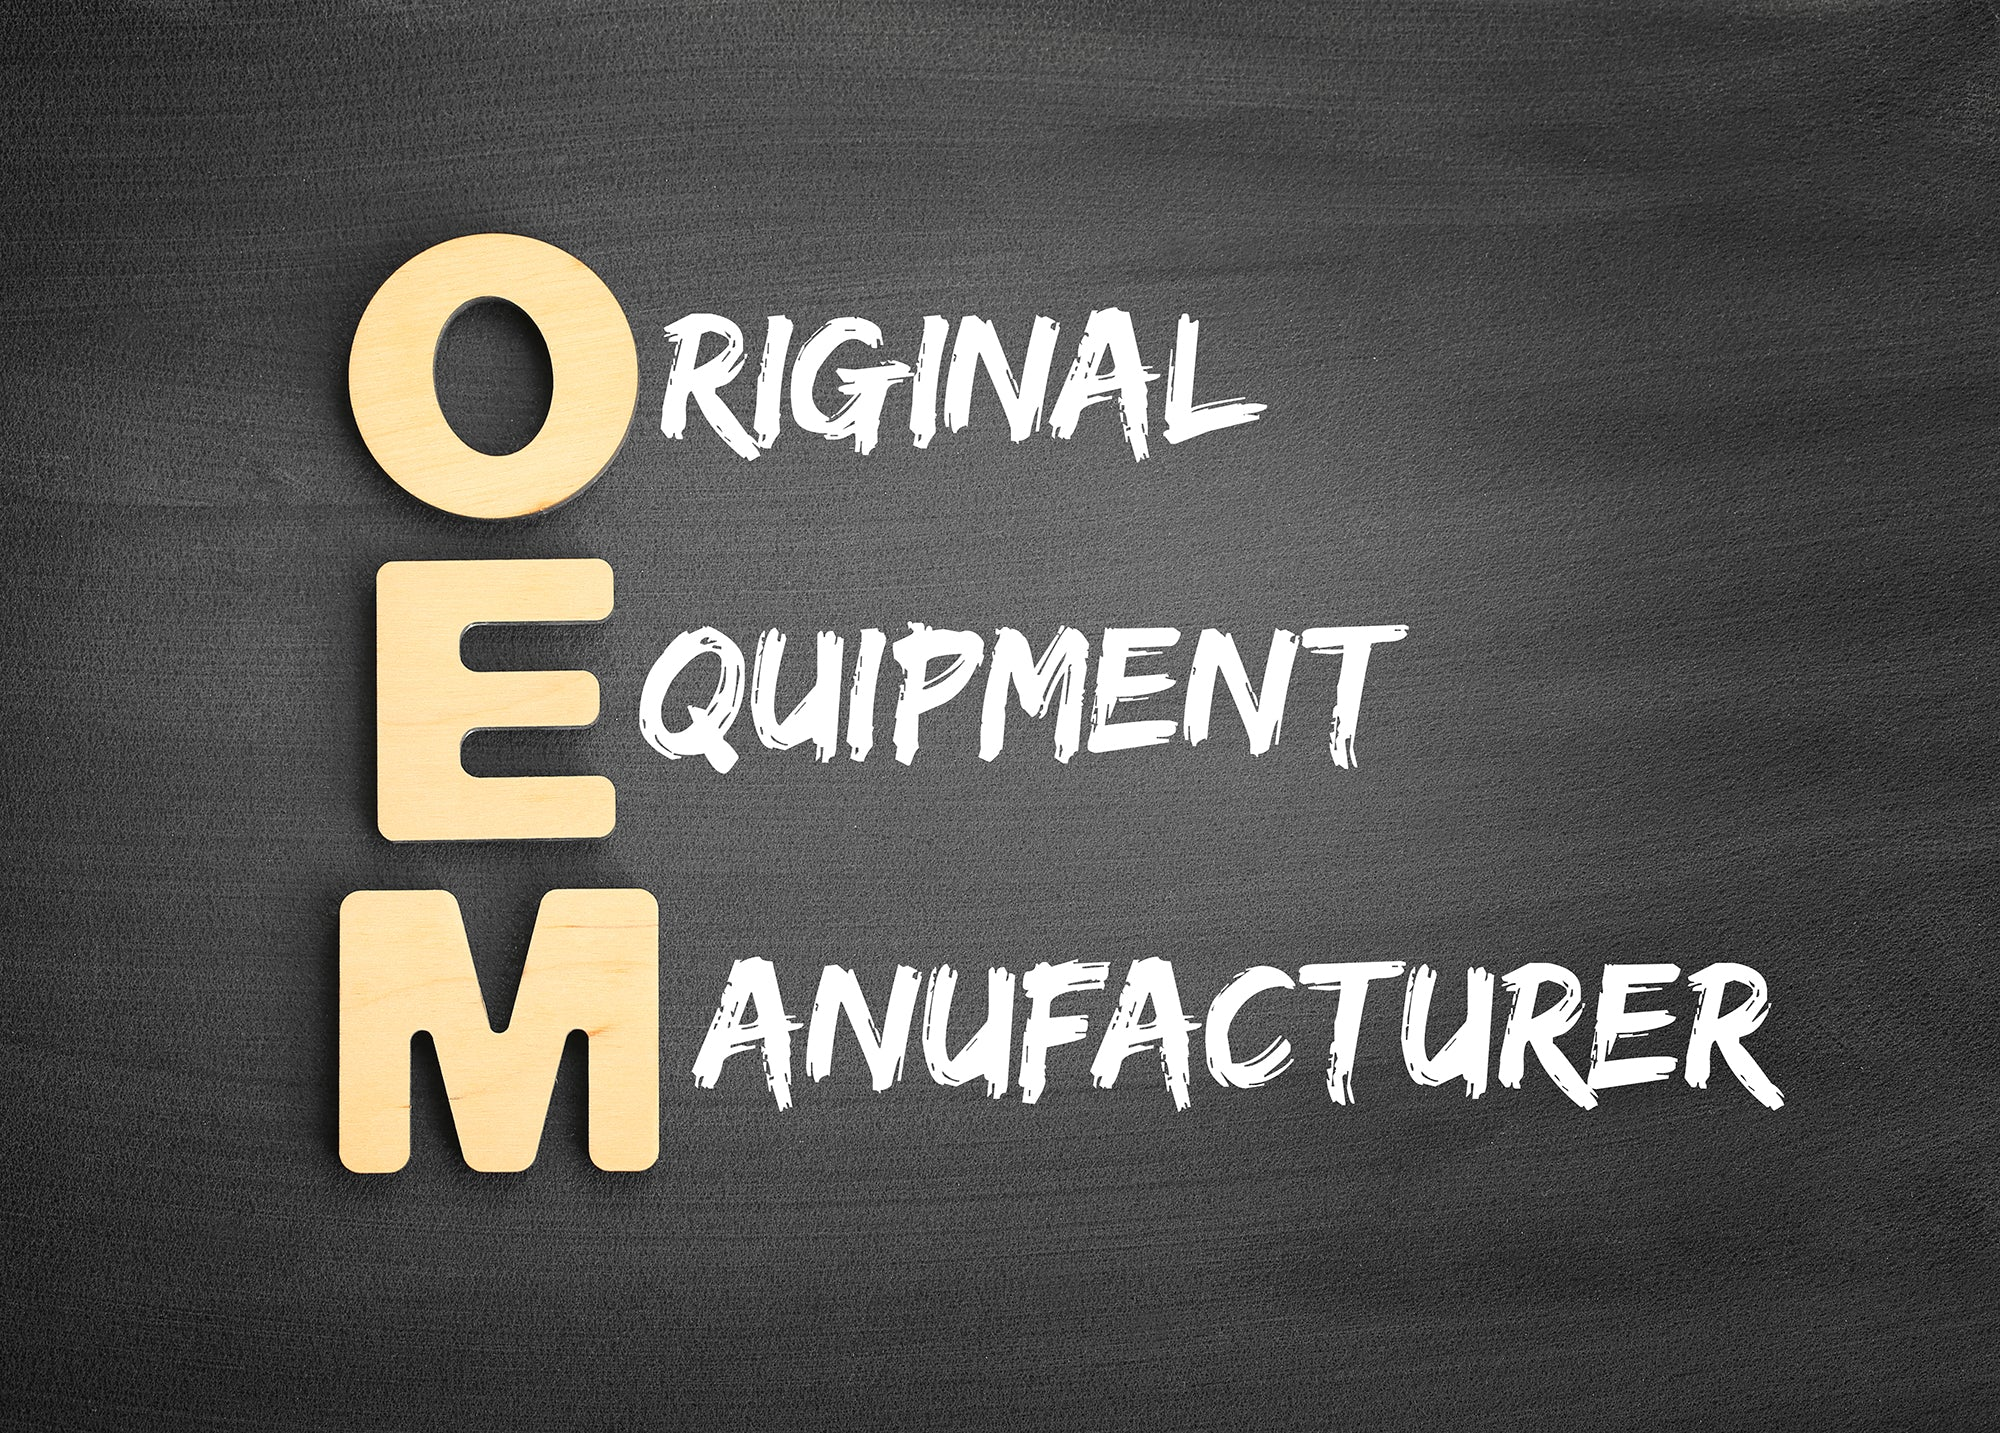 BioMedical-Original Equipment Manufacturers (OEM)